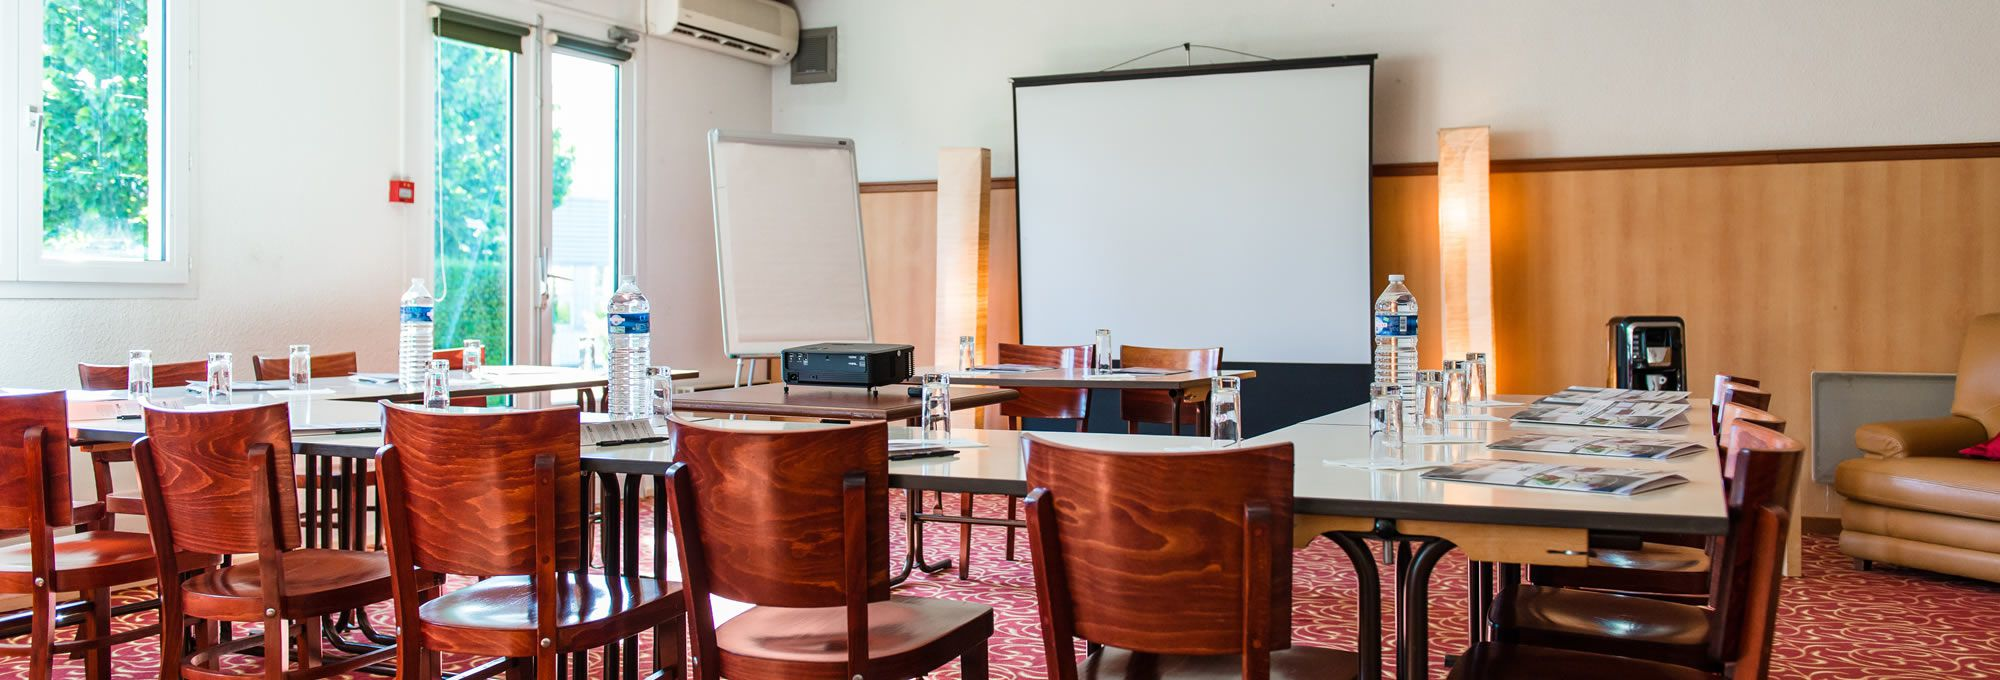 Our 2 seminar rooms